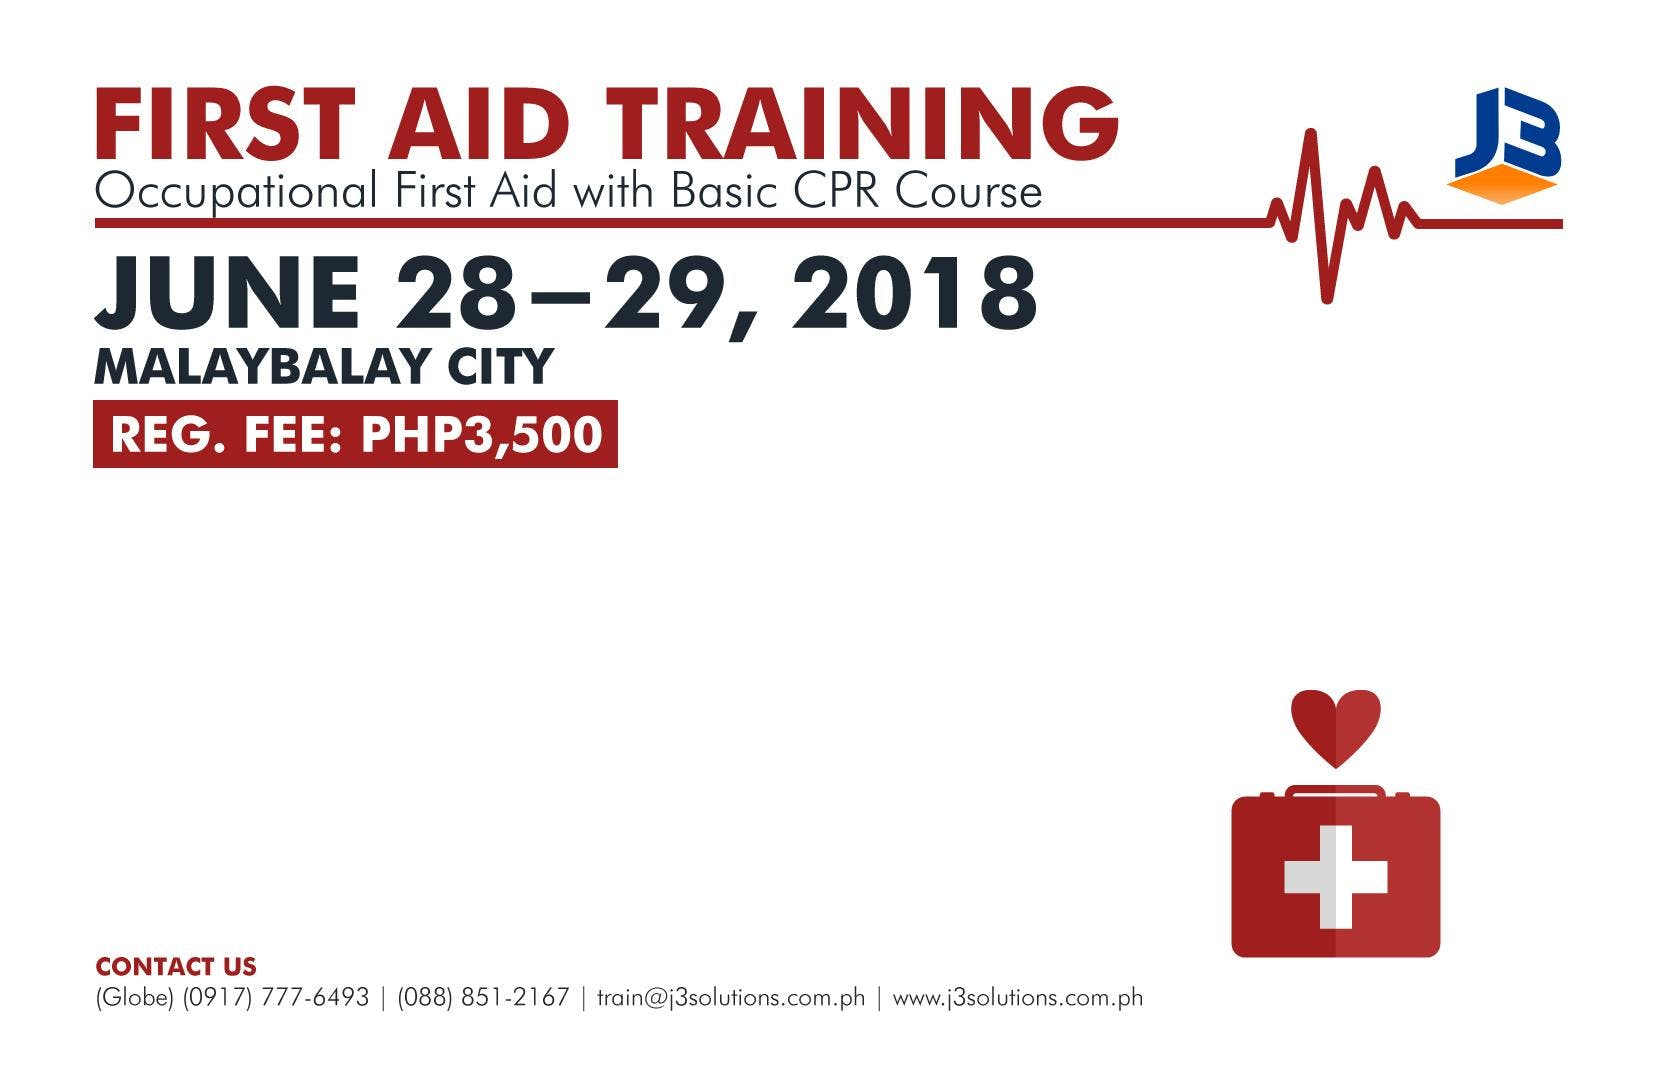 Occupational First Aid With Basic Cpr Course First Aid Training At